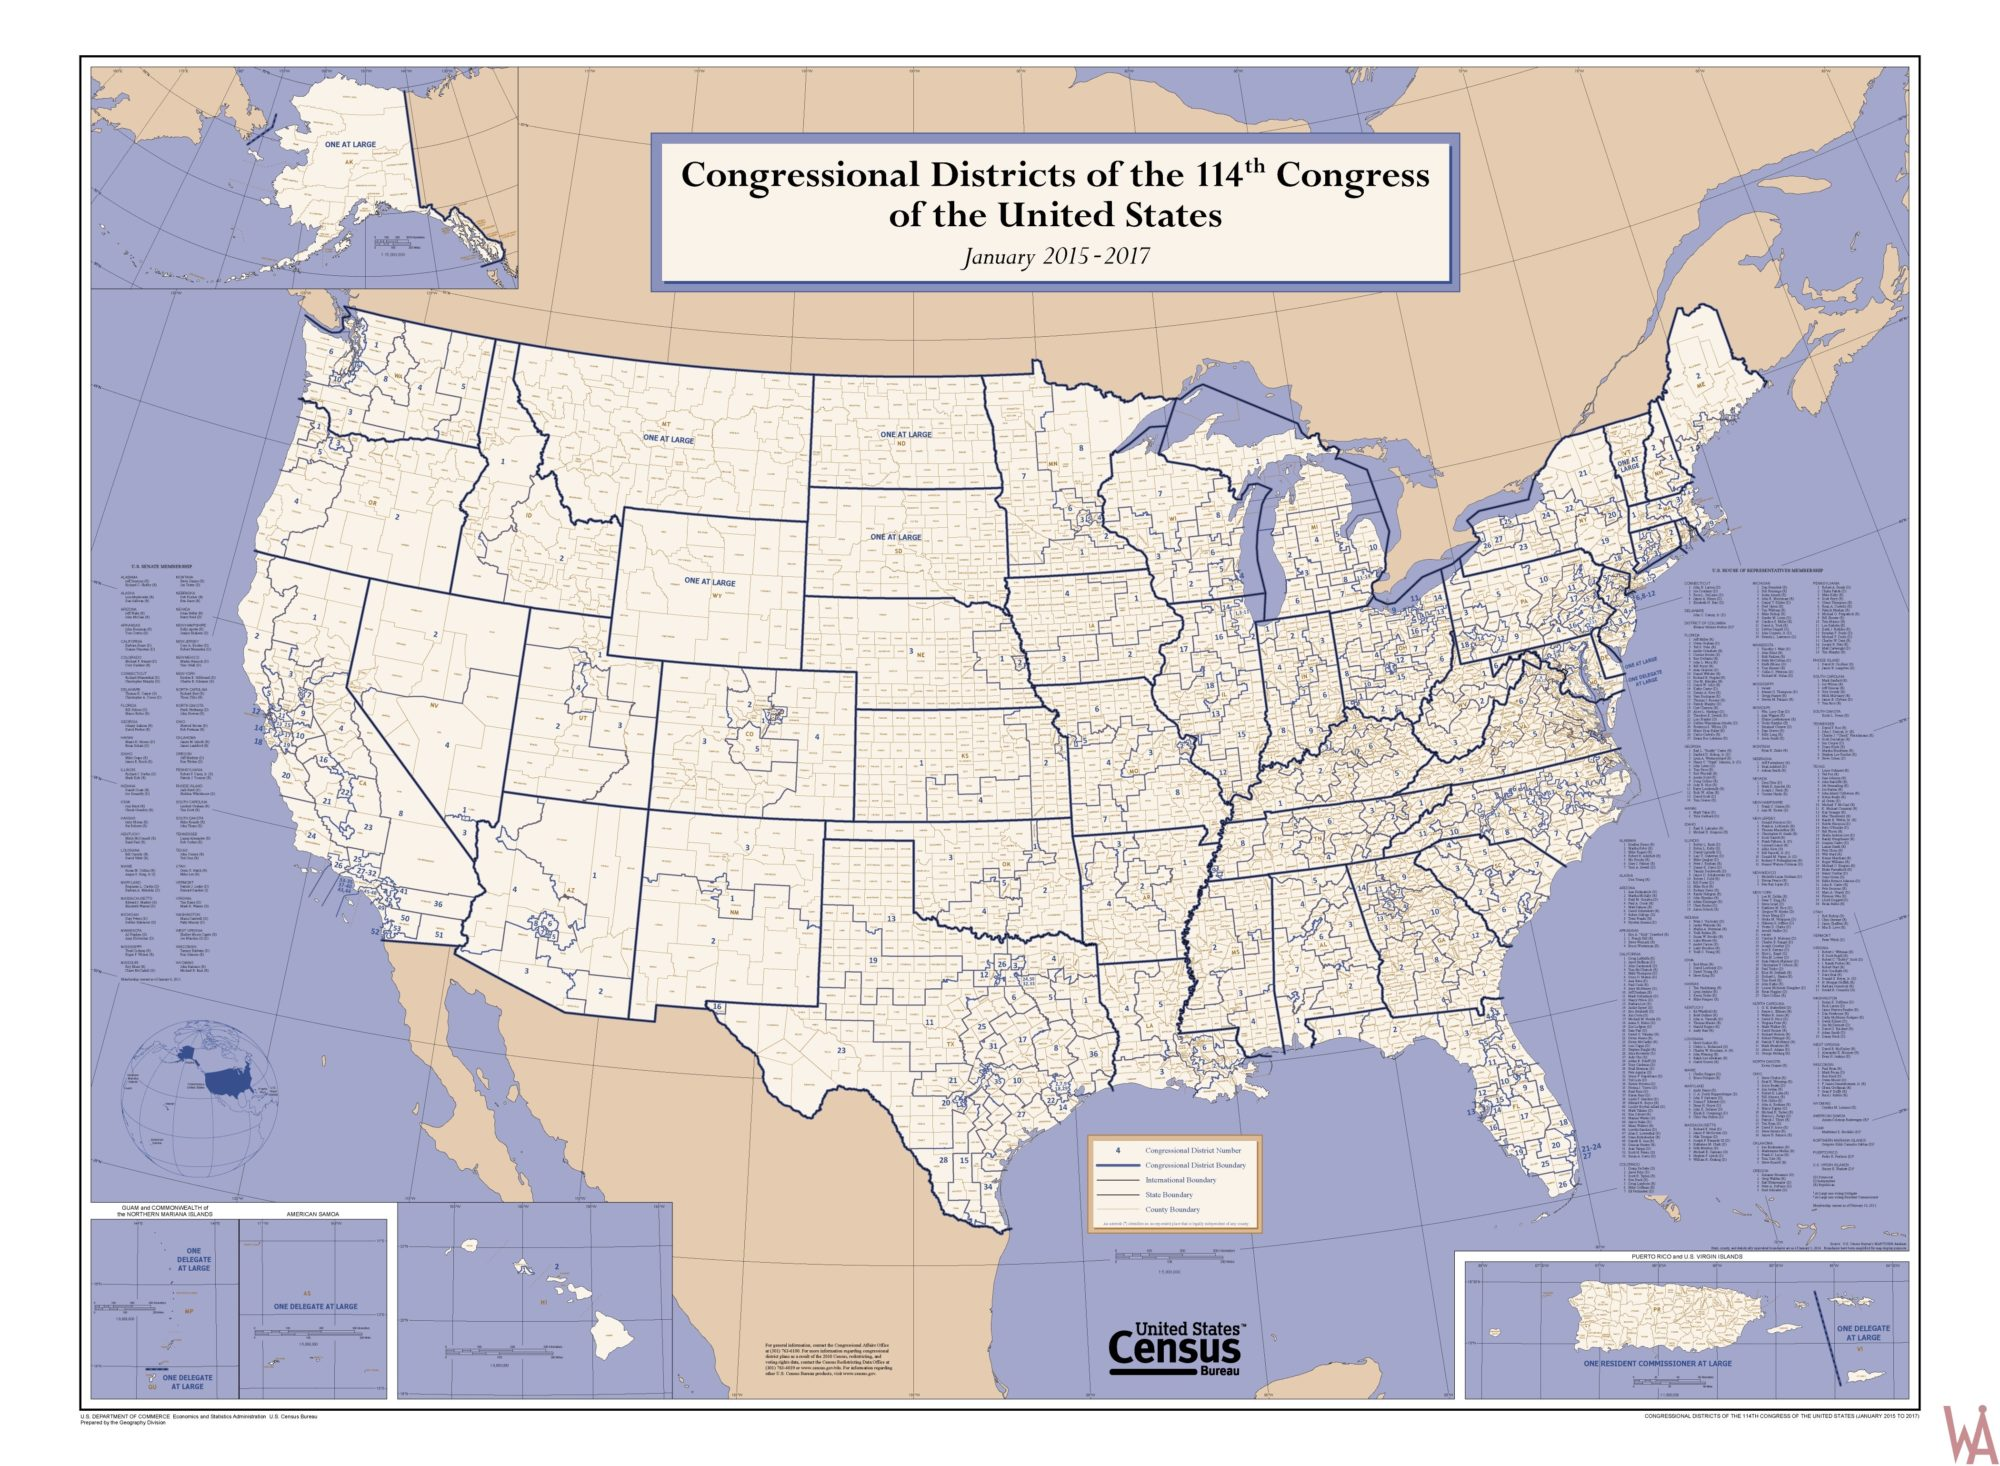 Low Quality Congressional District Map of the US